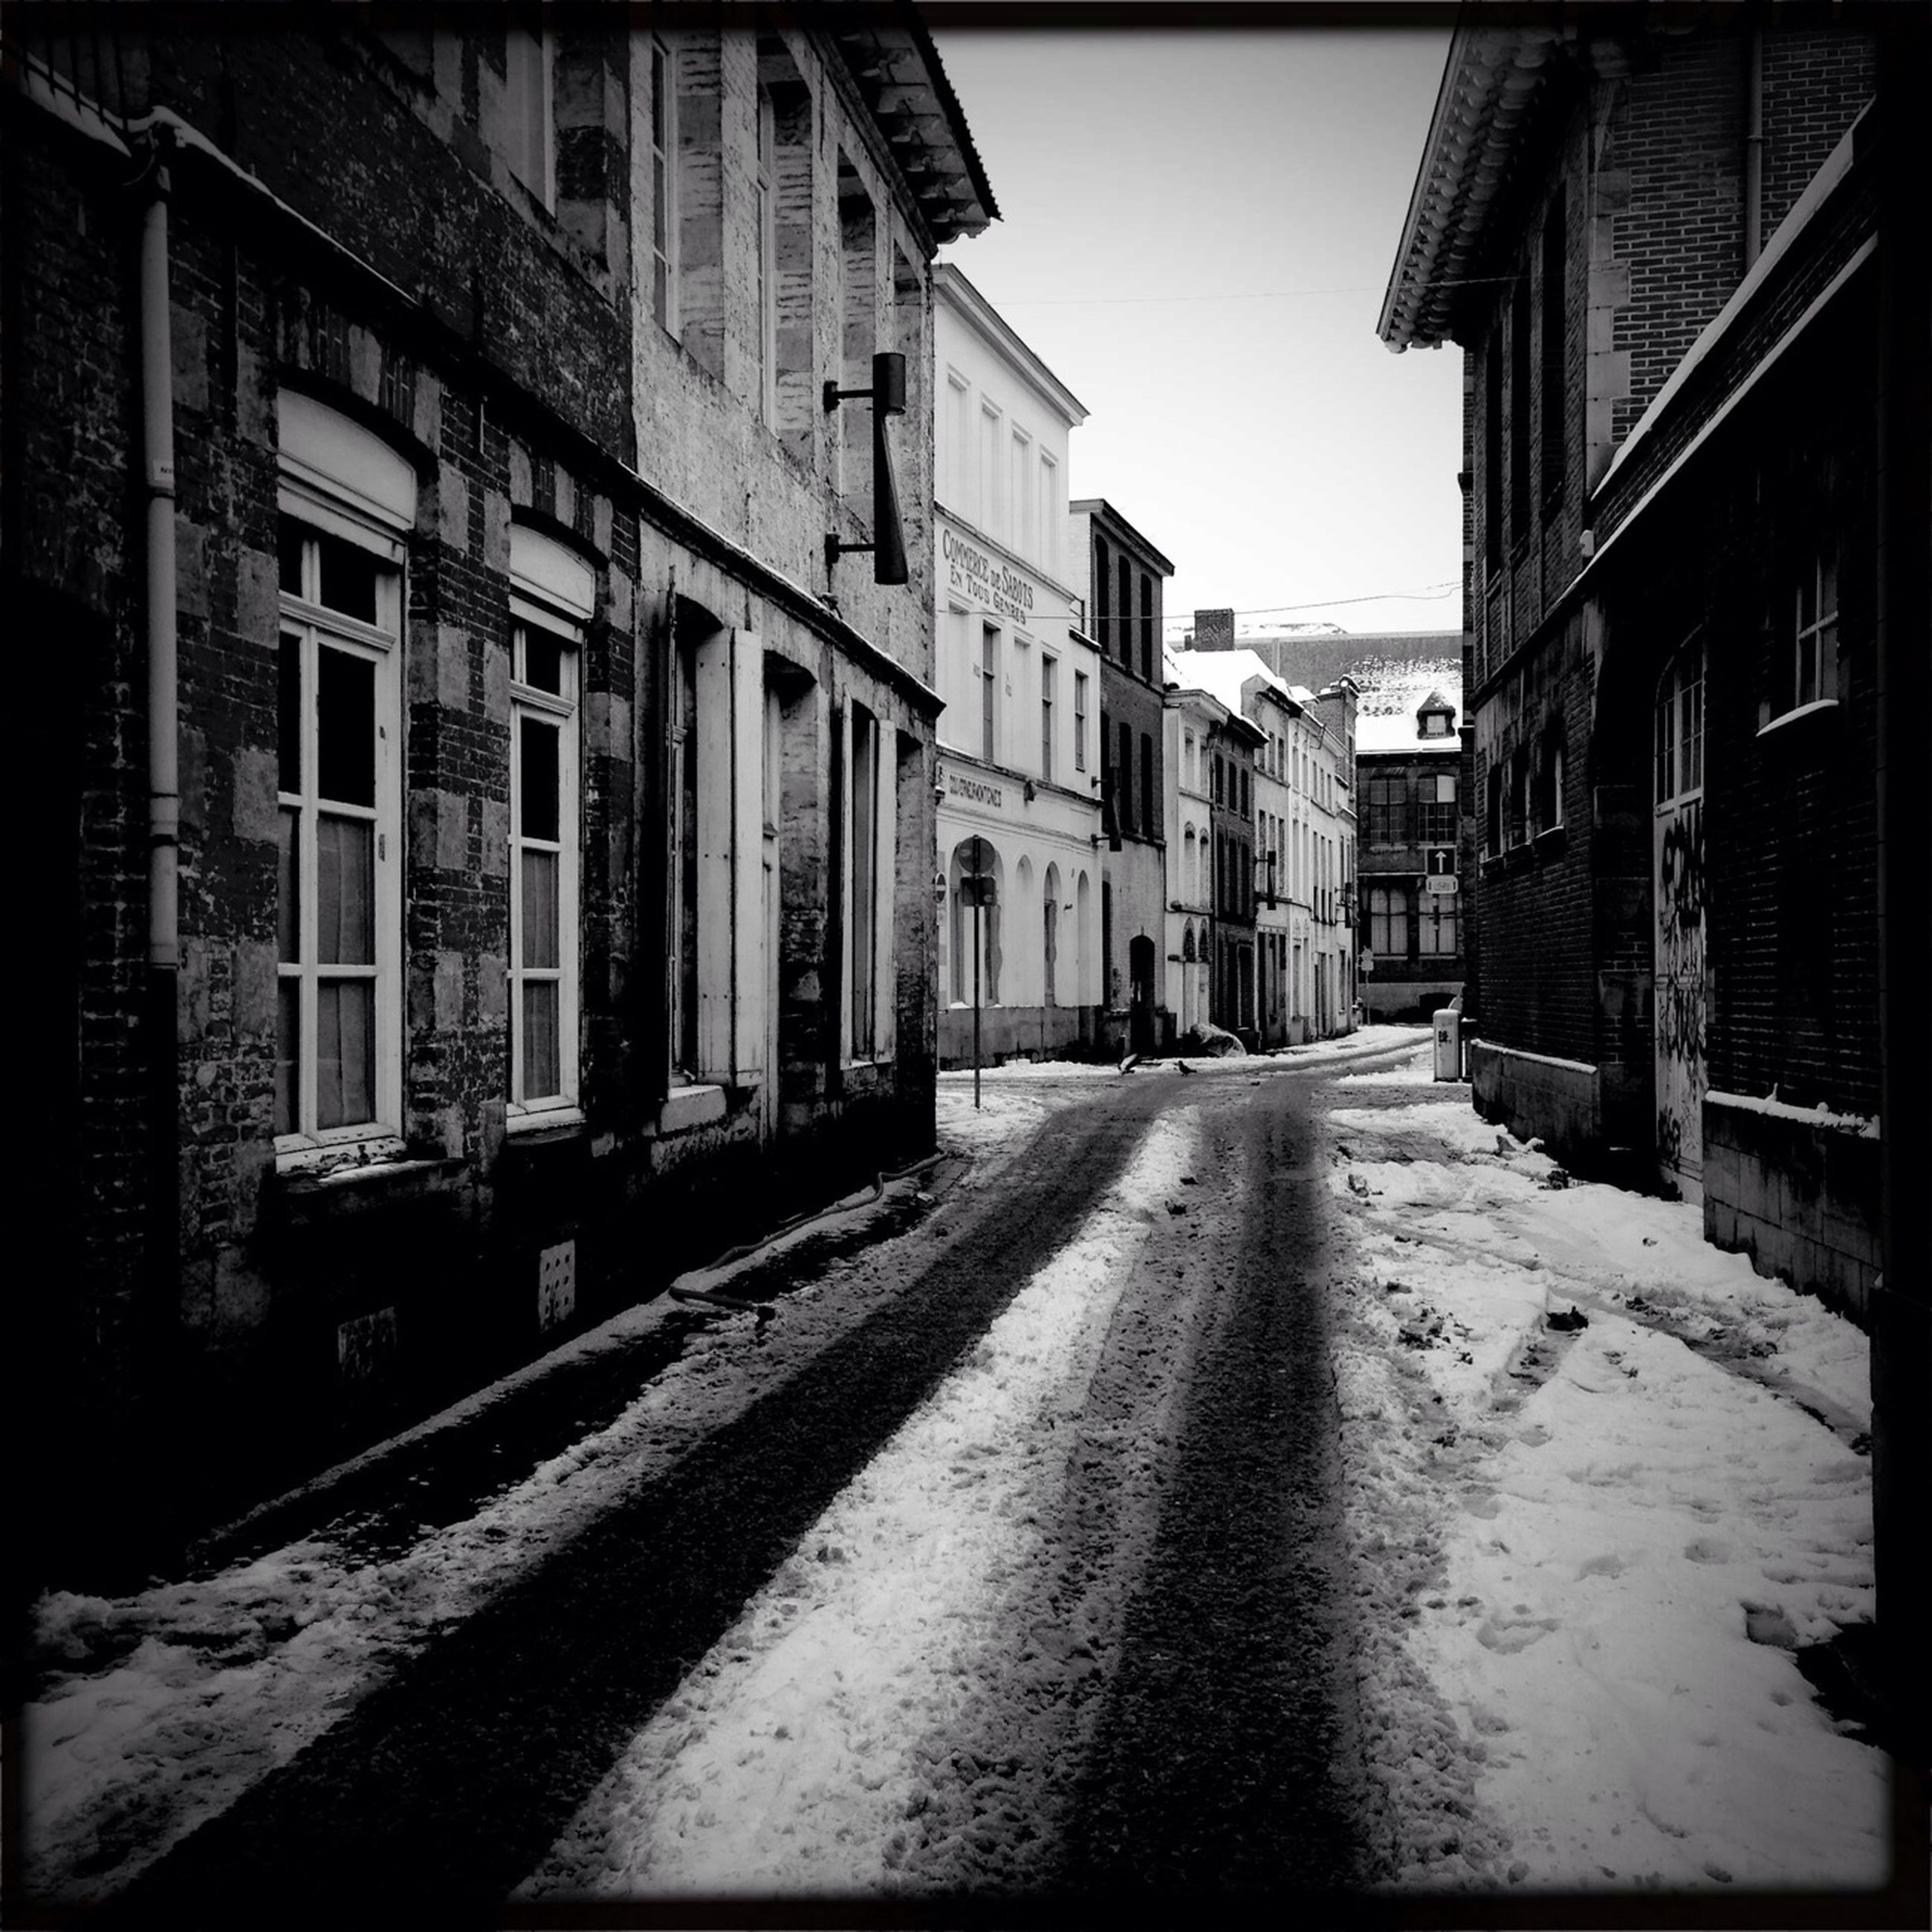 building exterior, architecture, built structure, the way forward, street, diminishing perspective, residential structure, residential building, building, city, narrow, alley, vanishing point, transportation, house, road, cobblestone, day, empty, long